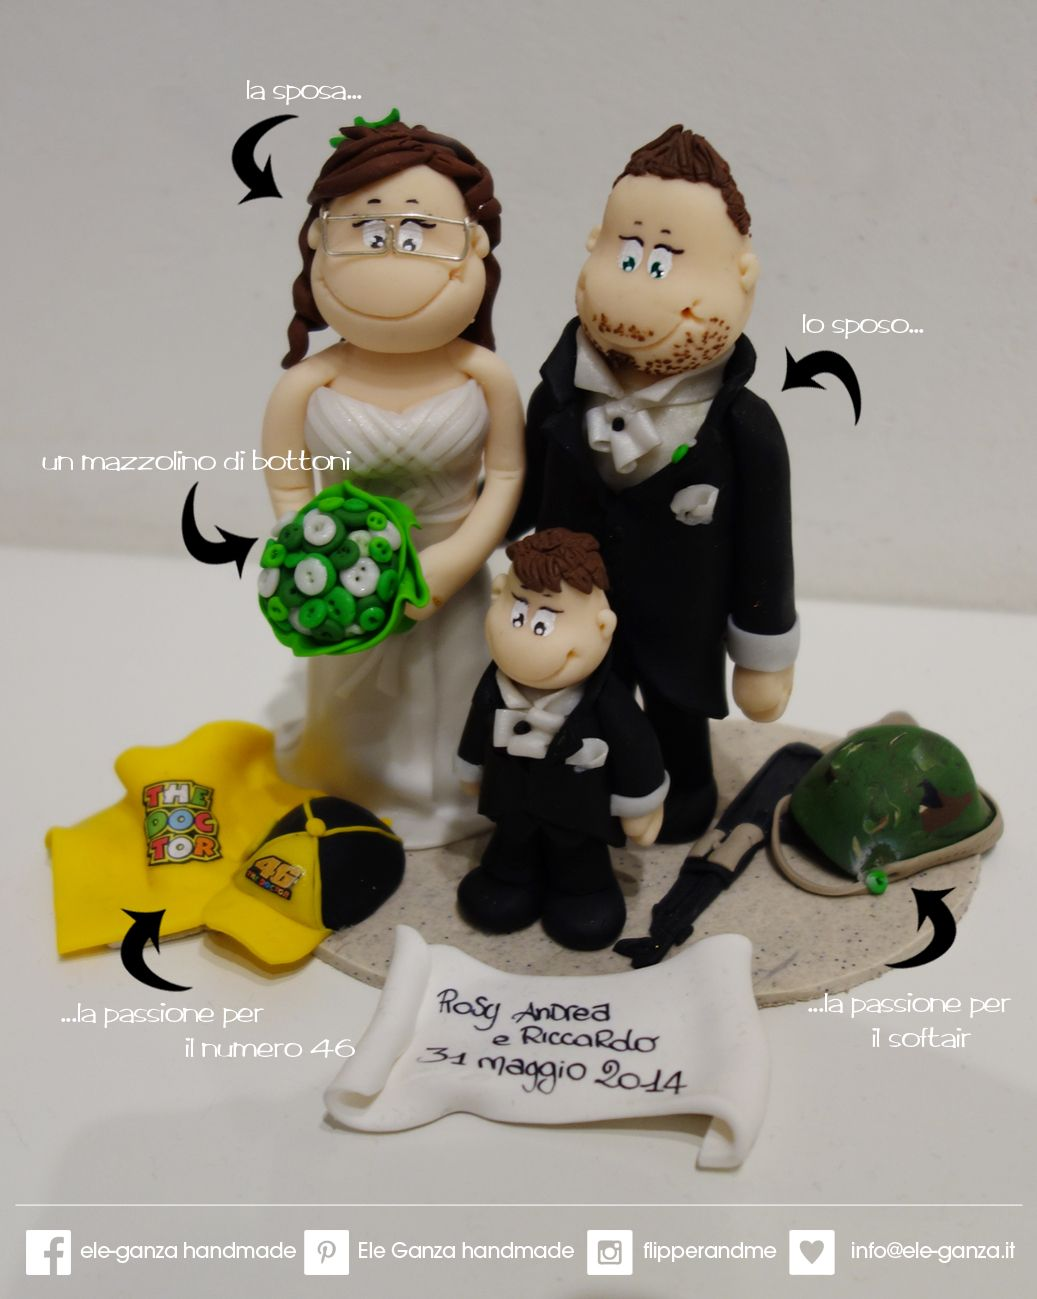 ...ele-ganza...: cake topper #matrimonio personalizzato #customcaketopper #caketopper #toppercake #topcake #weddingidea #weddingcake #wedding #bride #weddingcaketopper #sopratorta #cakedesign #cakeidea #caketop #fimo #clay #clayproject #clayminiature #valentinorossi #46 #motogp www.ele-ganza.it